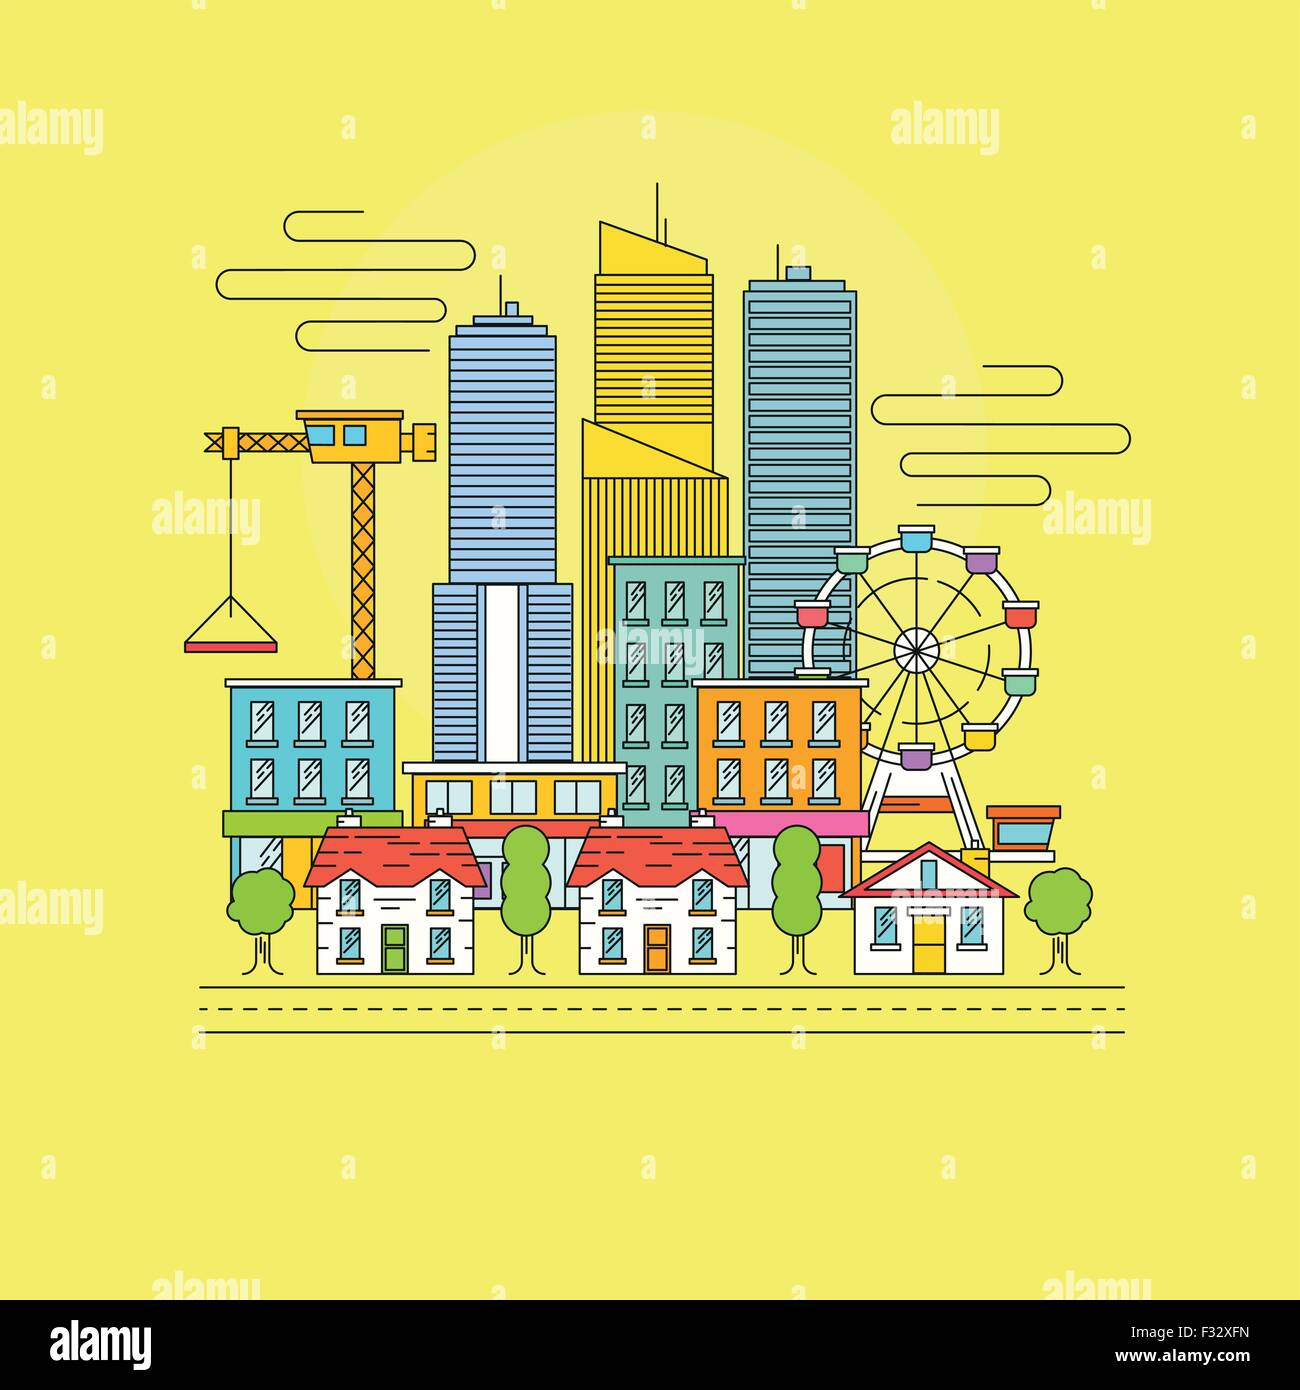 Vector Cityscape. A busy city scene with skyscrapers, retail shops and town houses. Vector illustration - Stock Vector